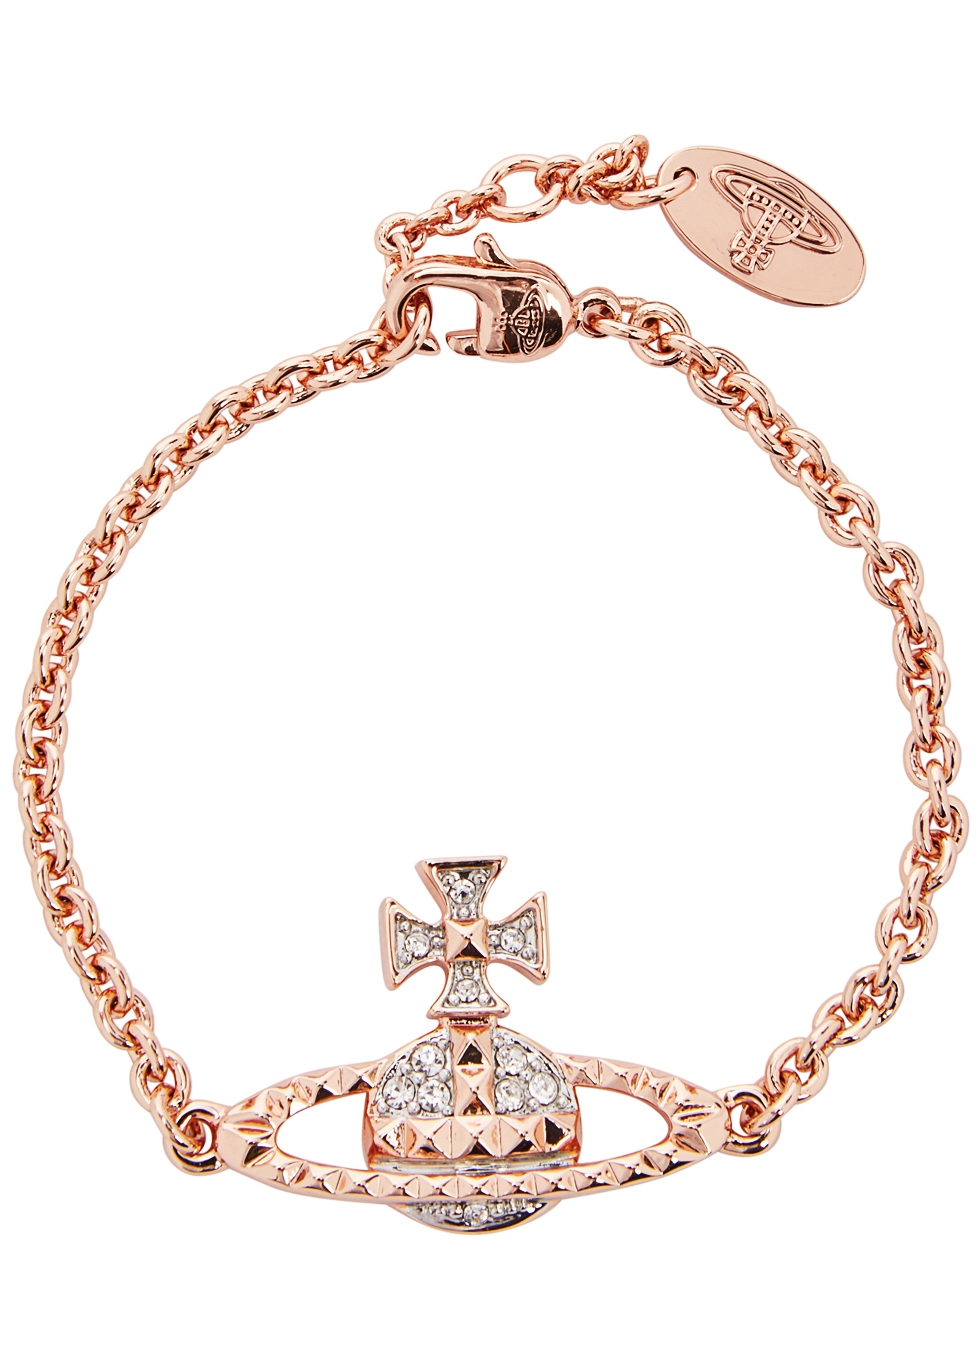 MAYFAIR BAS RELIEF ROSE GOLD TONE BRACELET